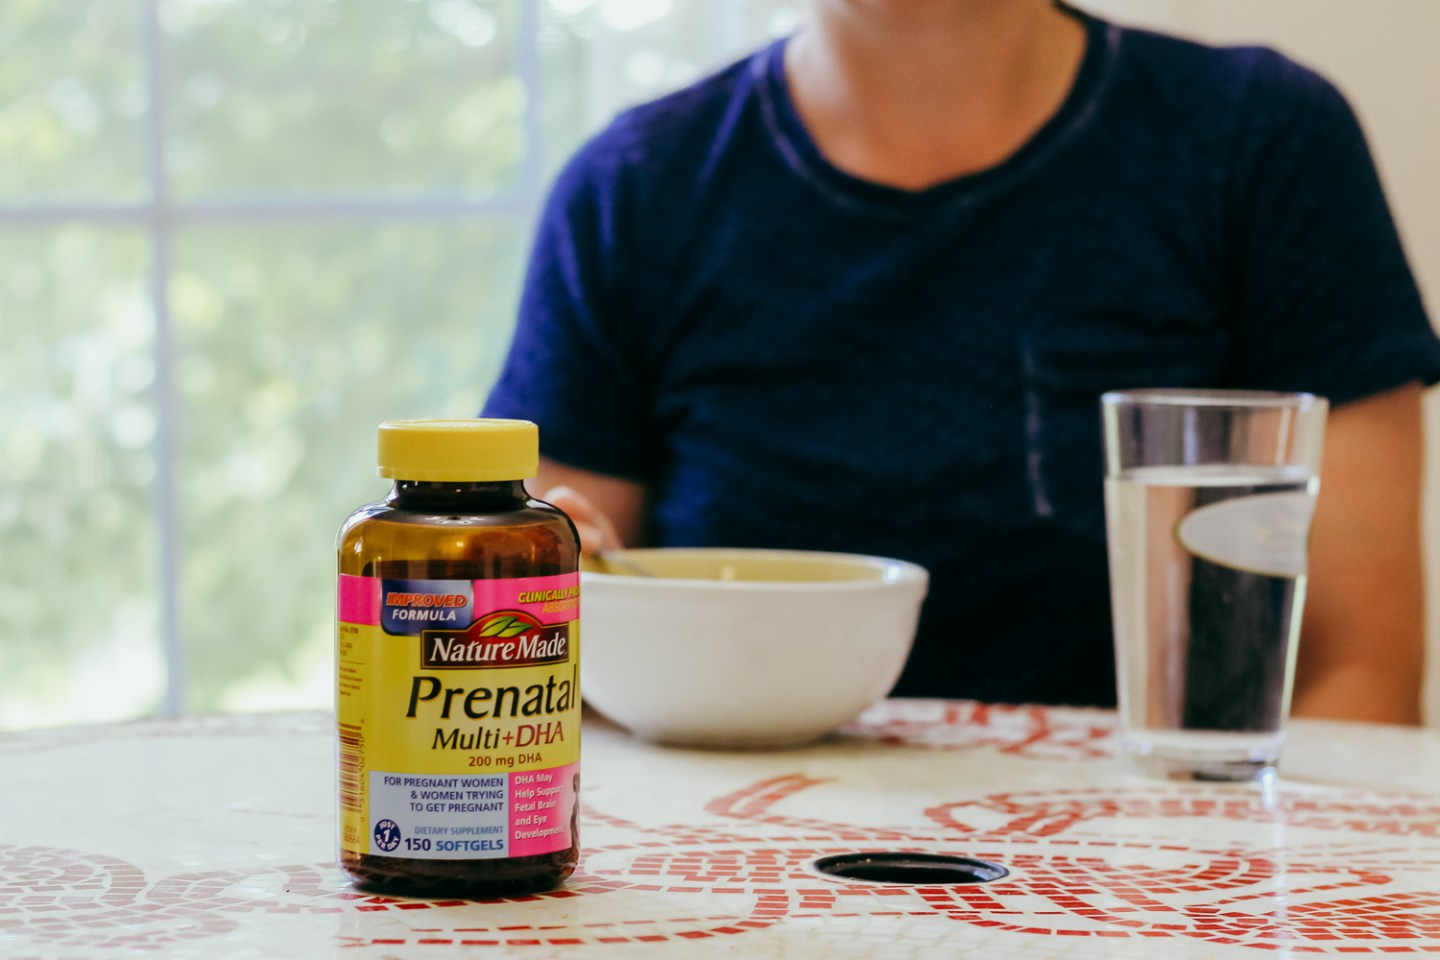 Preparing for Pregnancy With Nature Made Prenatal®Vitamins